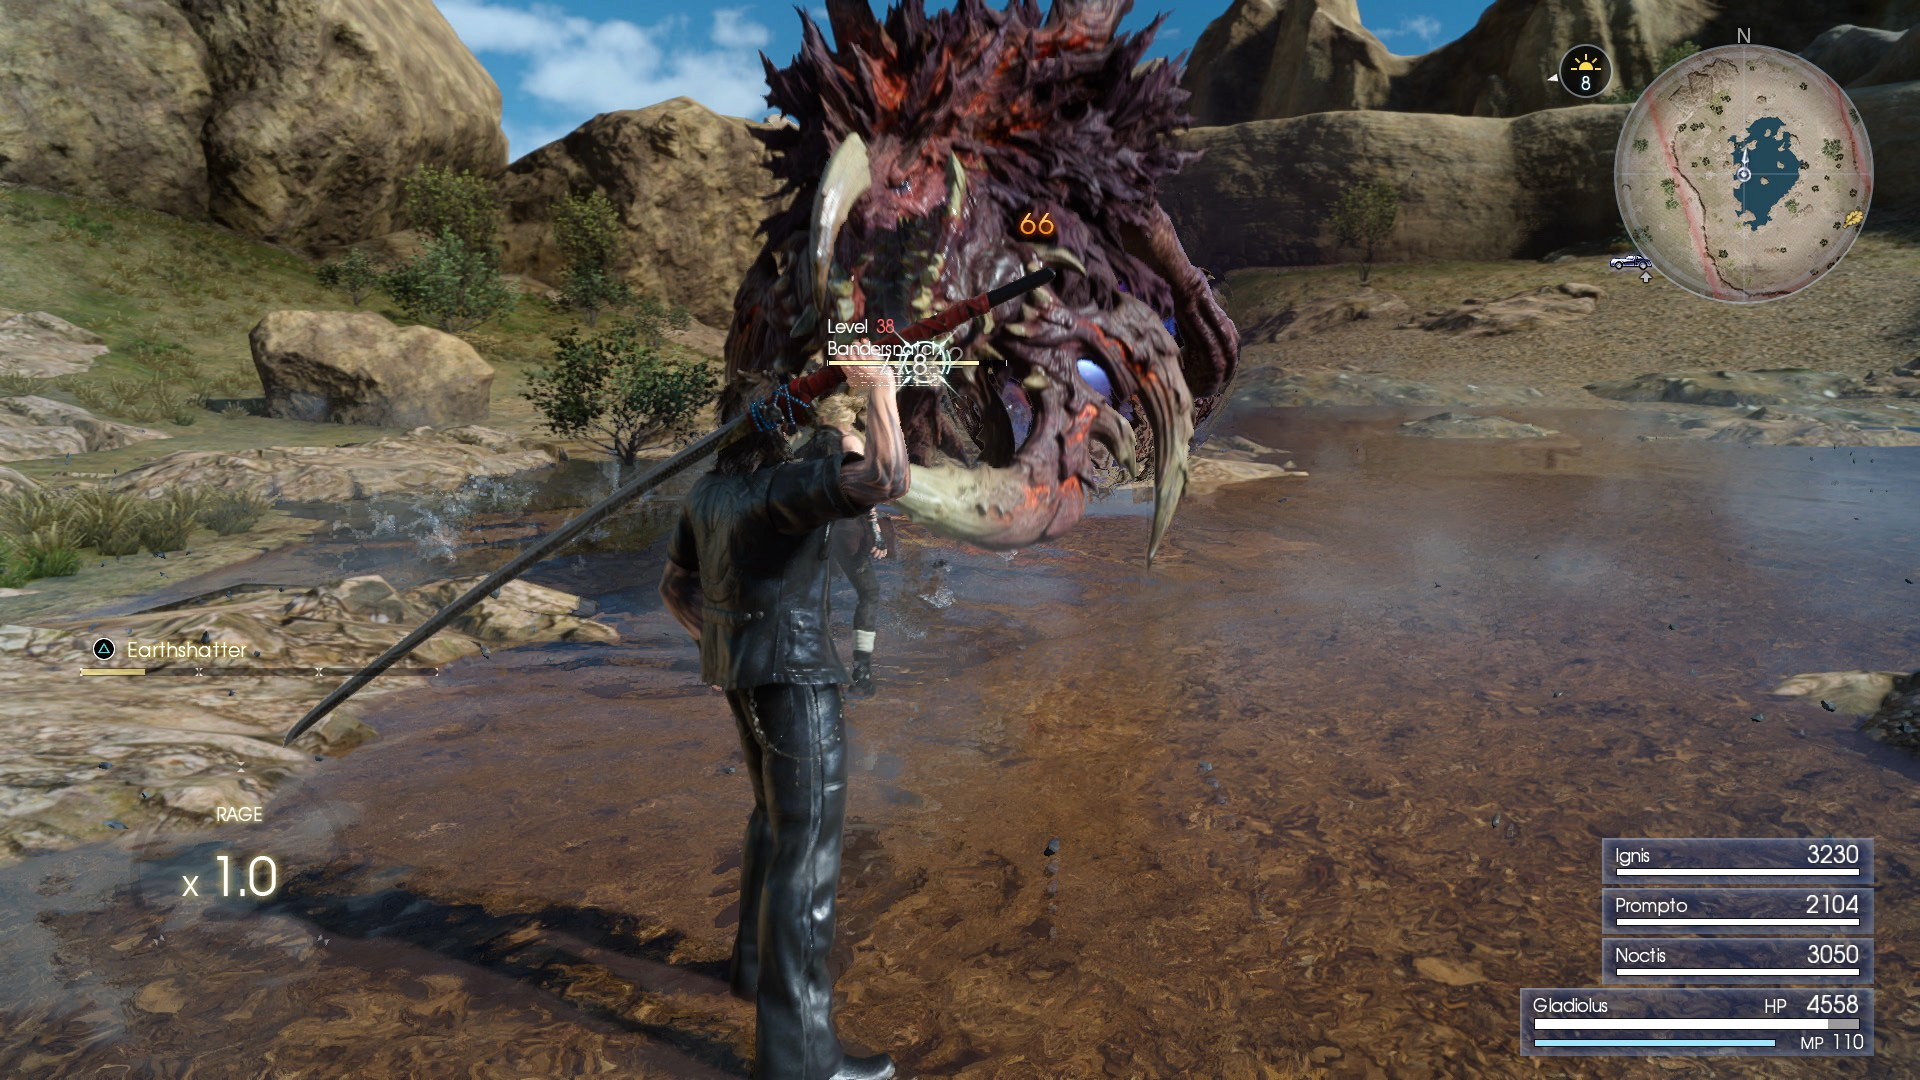 final fantasy 15 for pc supports 4k and 8k needs 155gb of hdd space